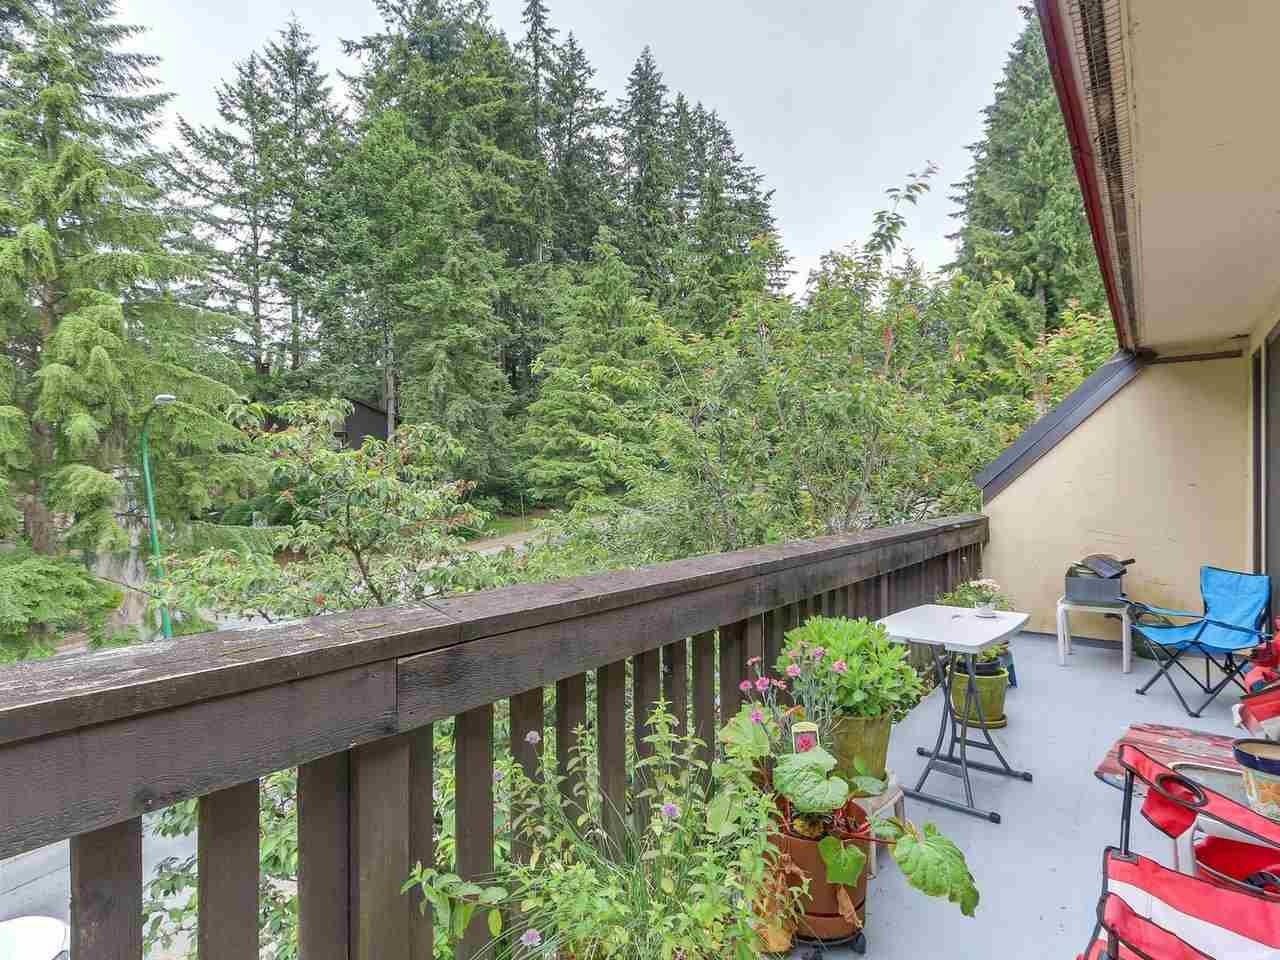 """Photo 7: Photos: 15 1811 PURCELL Way in North Vancouver: Lynnmour Condo for sale in """"LYNNMOUR SOUTH"""" : MLS®# R2276321"""